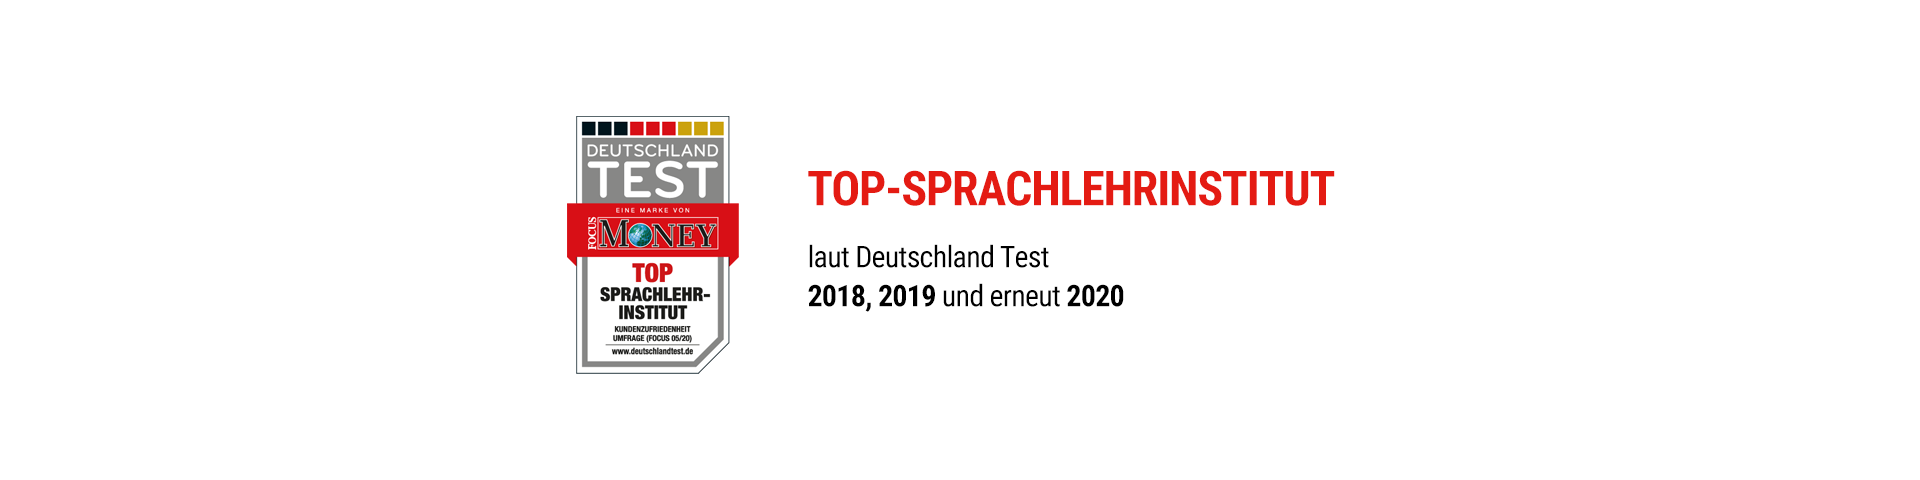 Top Sprachlehrinstitut 2020